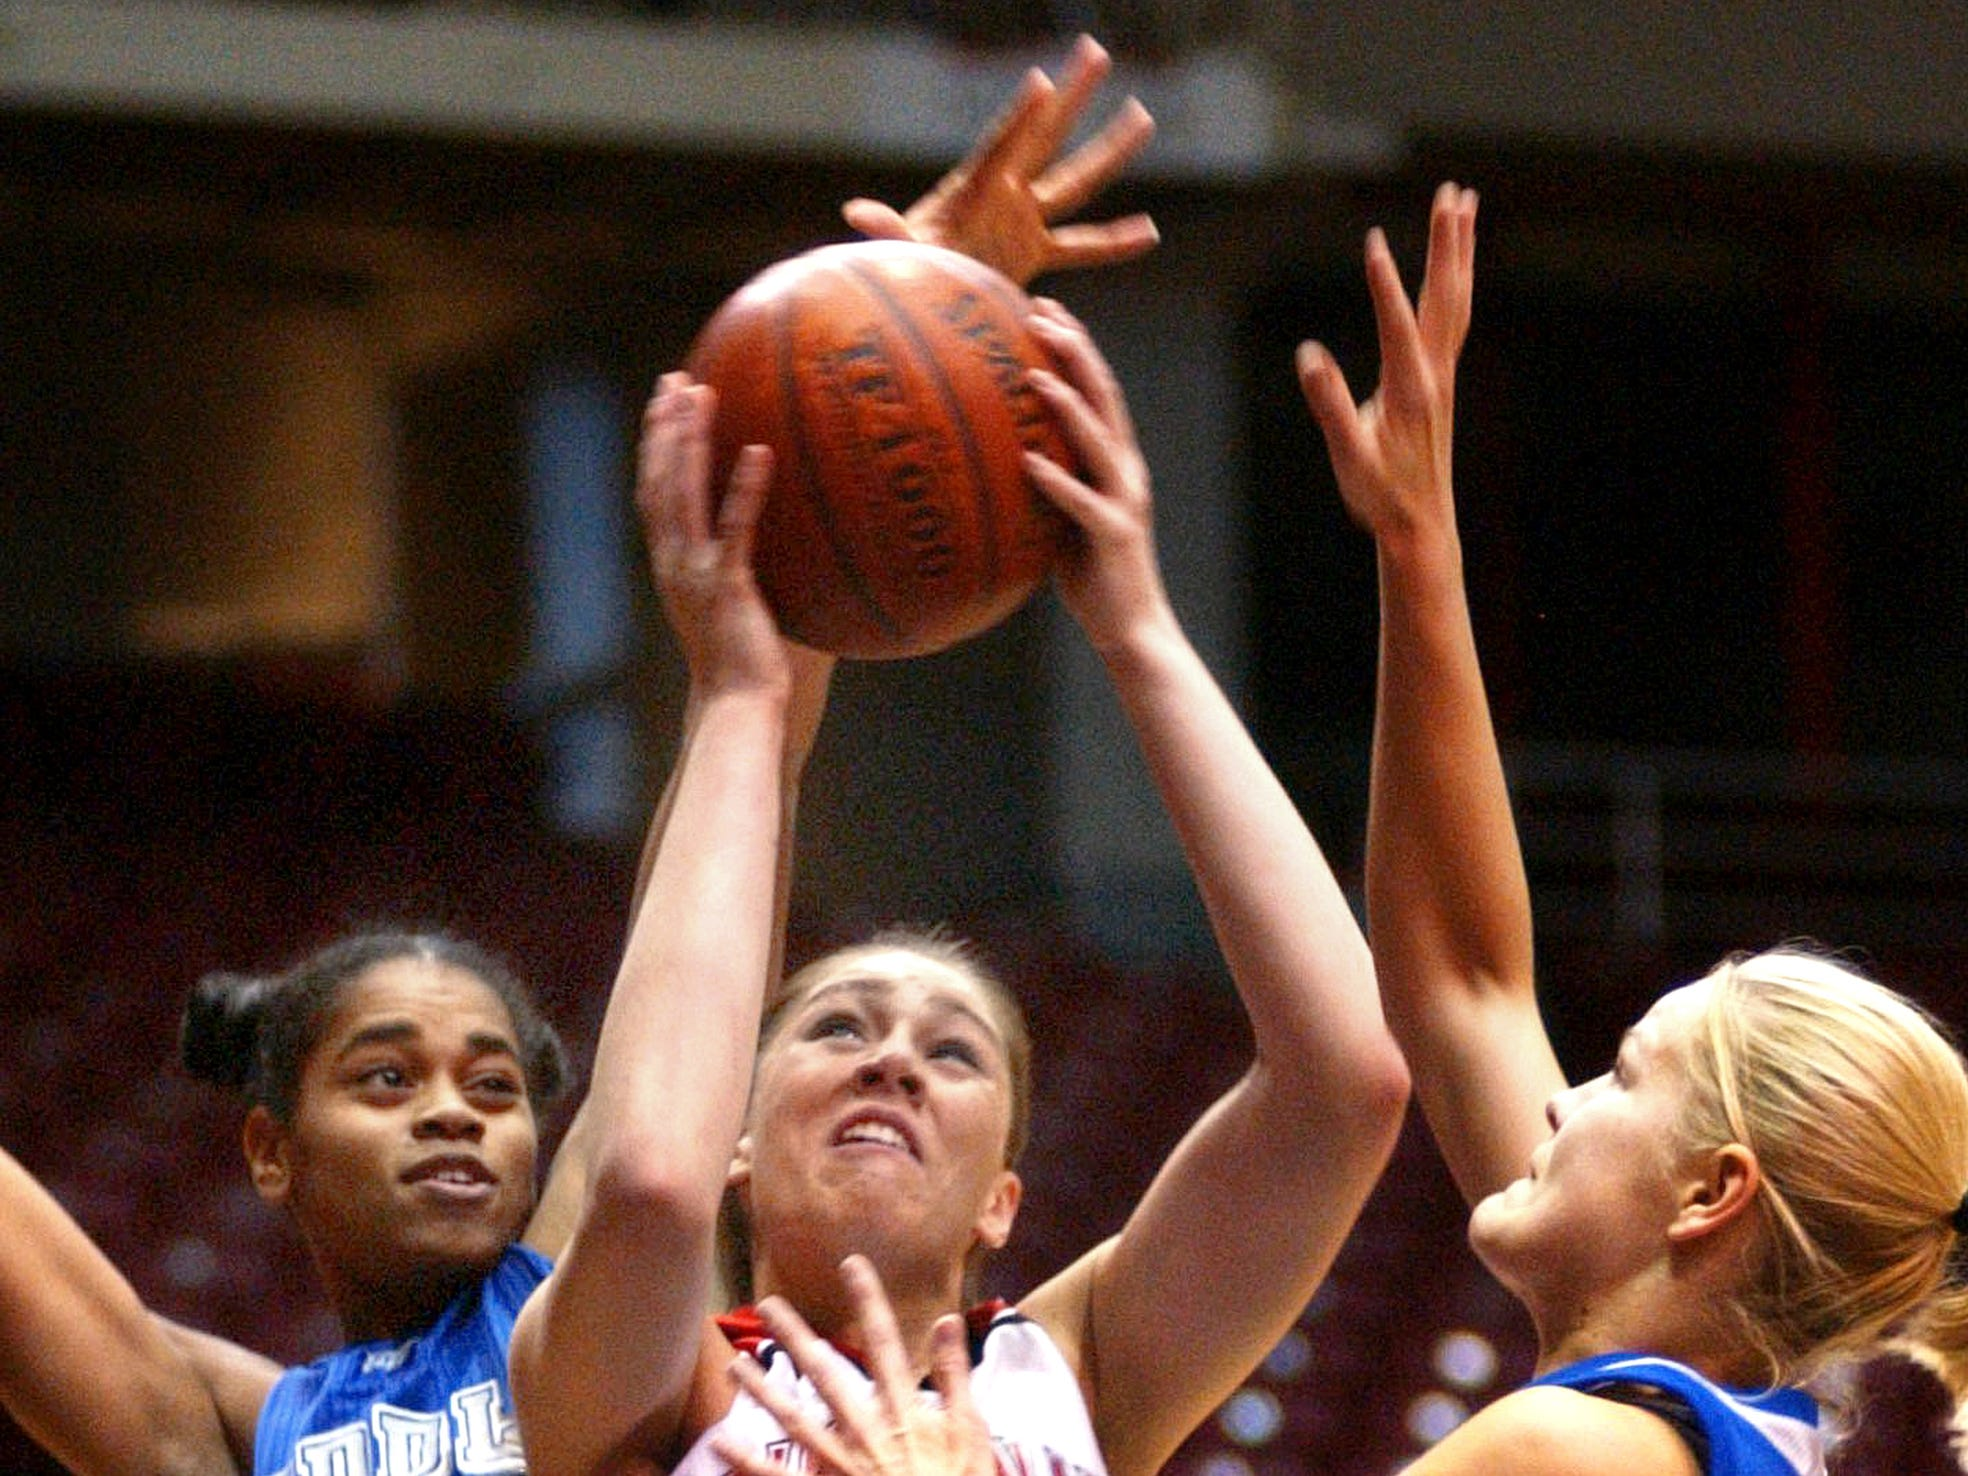 Cincinnati's Debbie Merrill, center, tries to shoot between Middle Tennessee's Tia Stovall, left, and Mia Parviainen during the first half in Cincinnati on Saturday, Nov. 30, 2002.